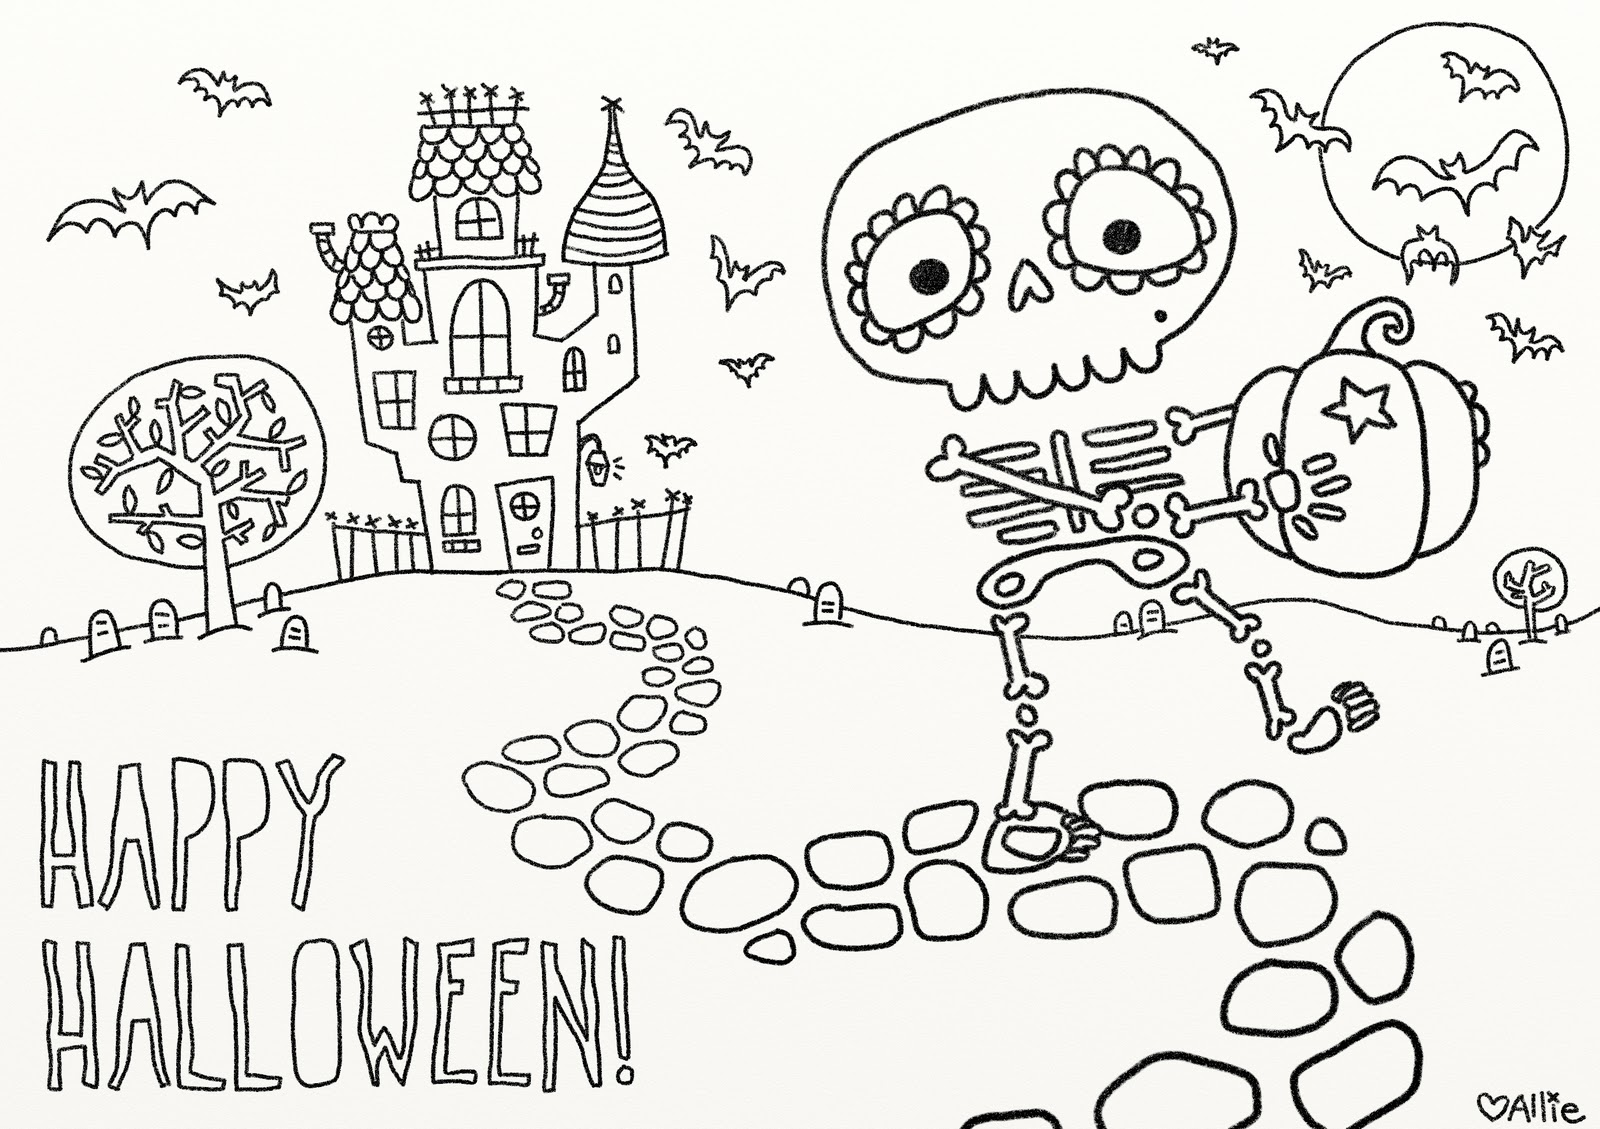 free-halloween-coloring-pages-for-kids-printable